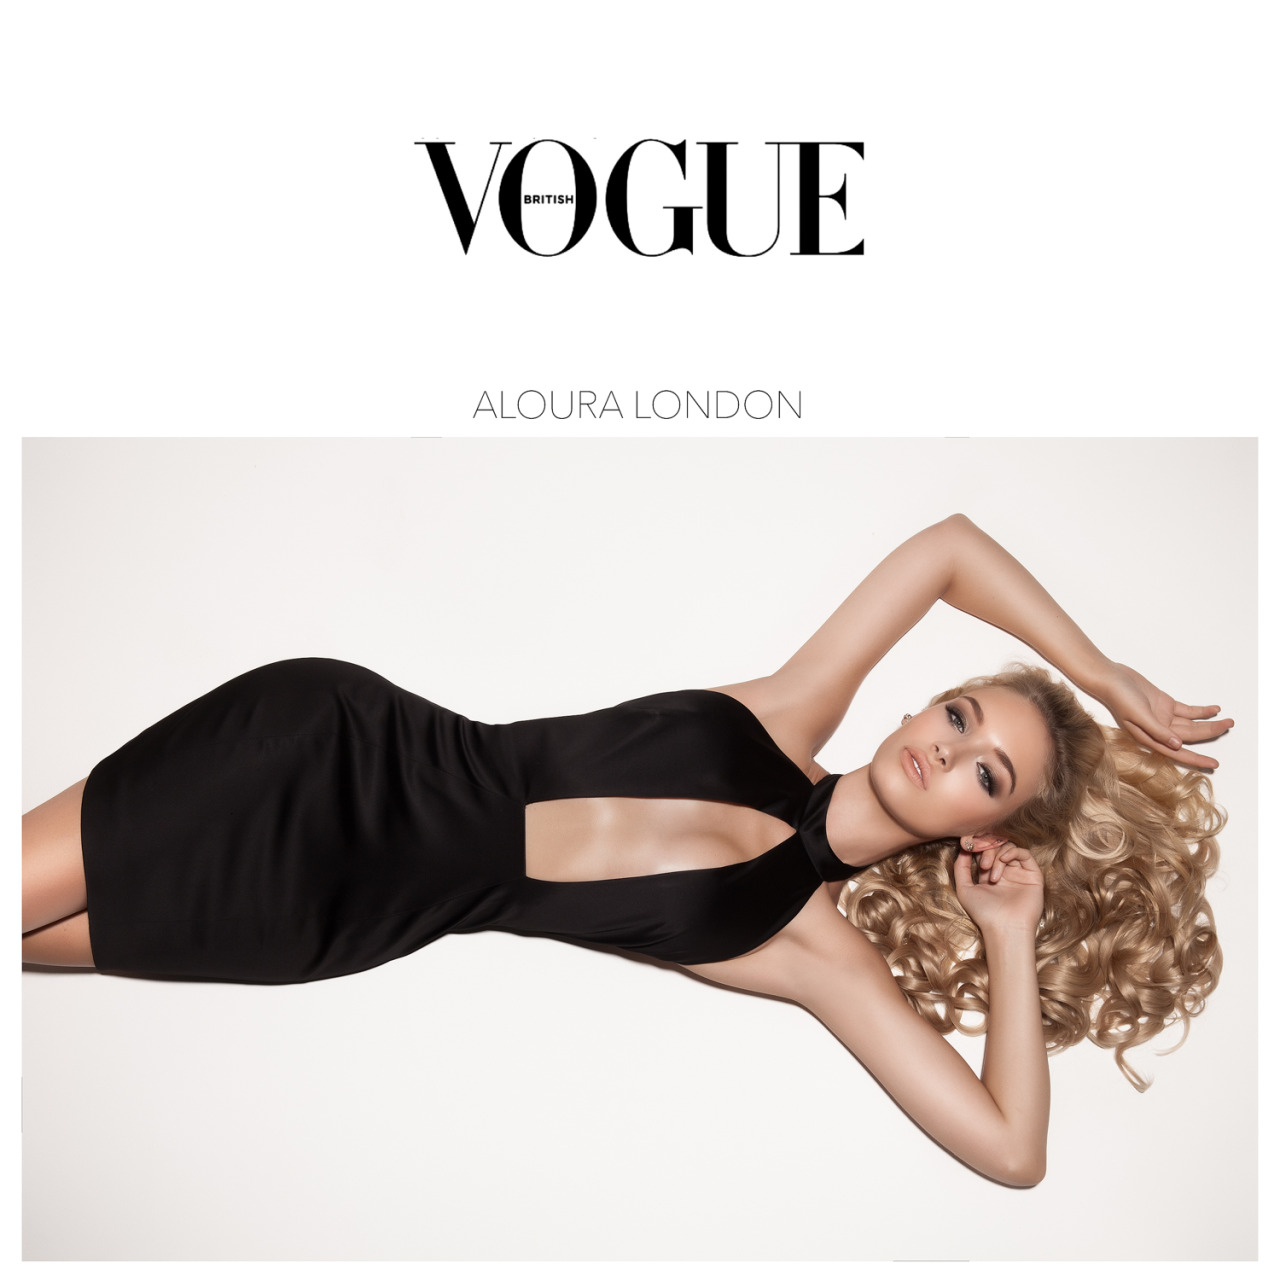 British Vogue - September Issue 2015 with Roxy Horner and Aloura London.